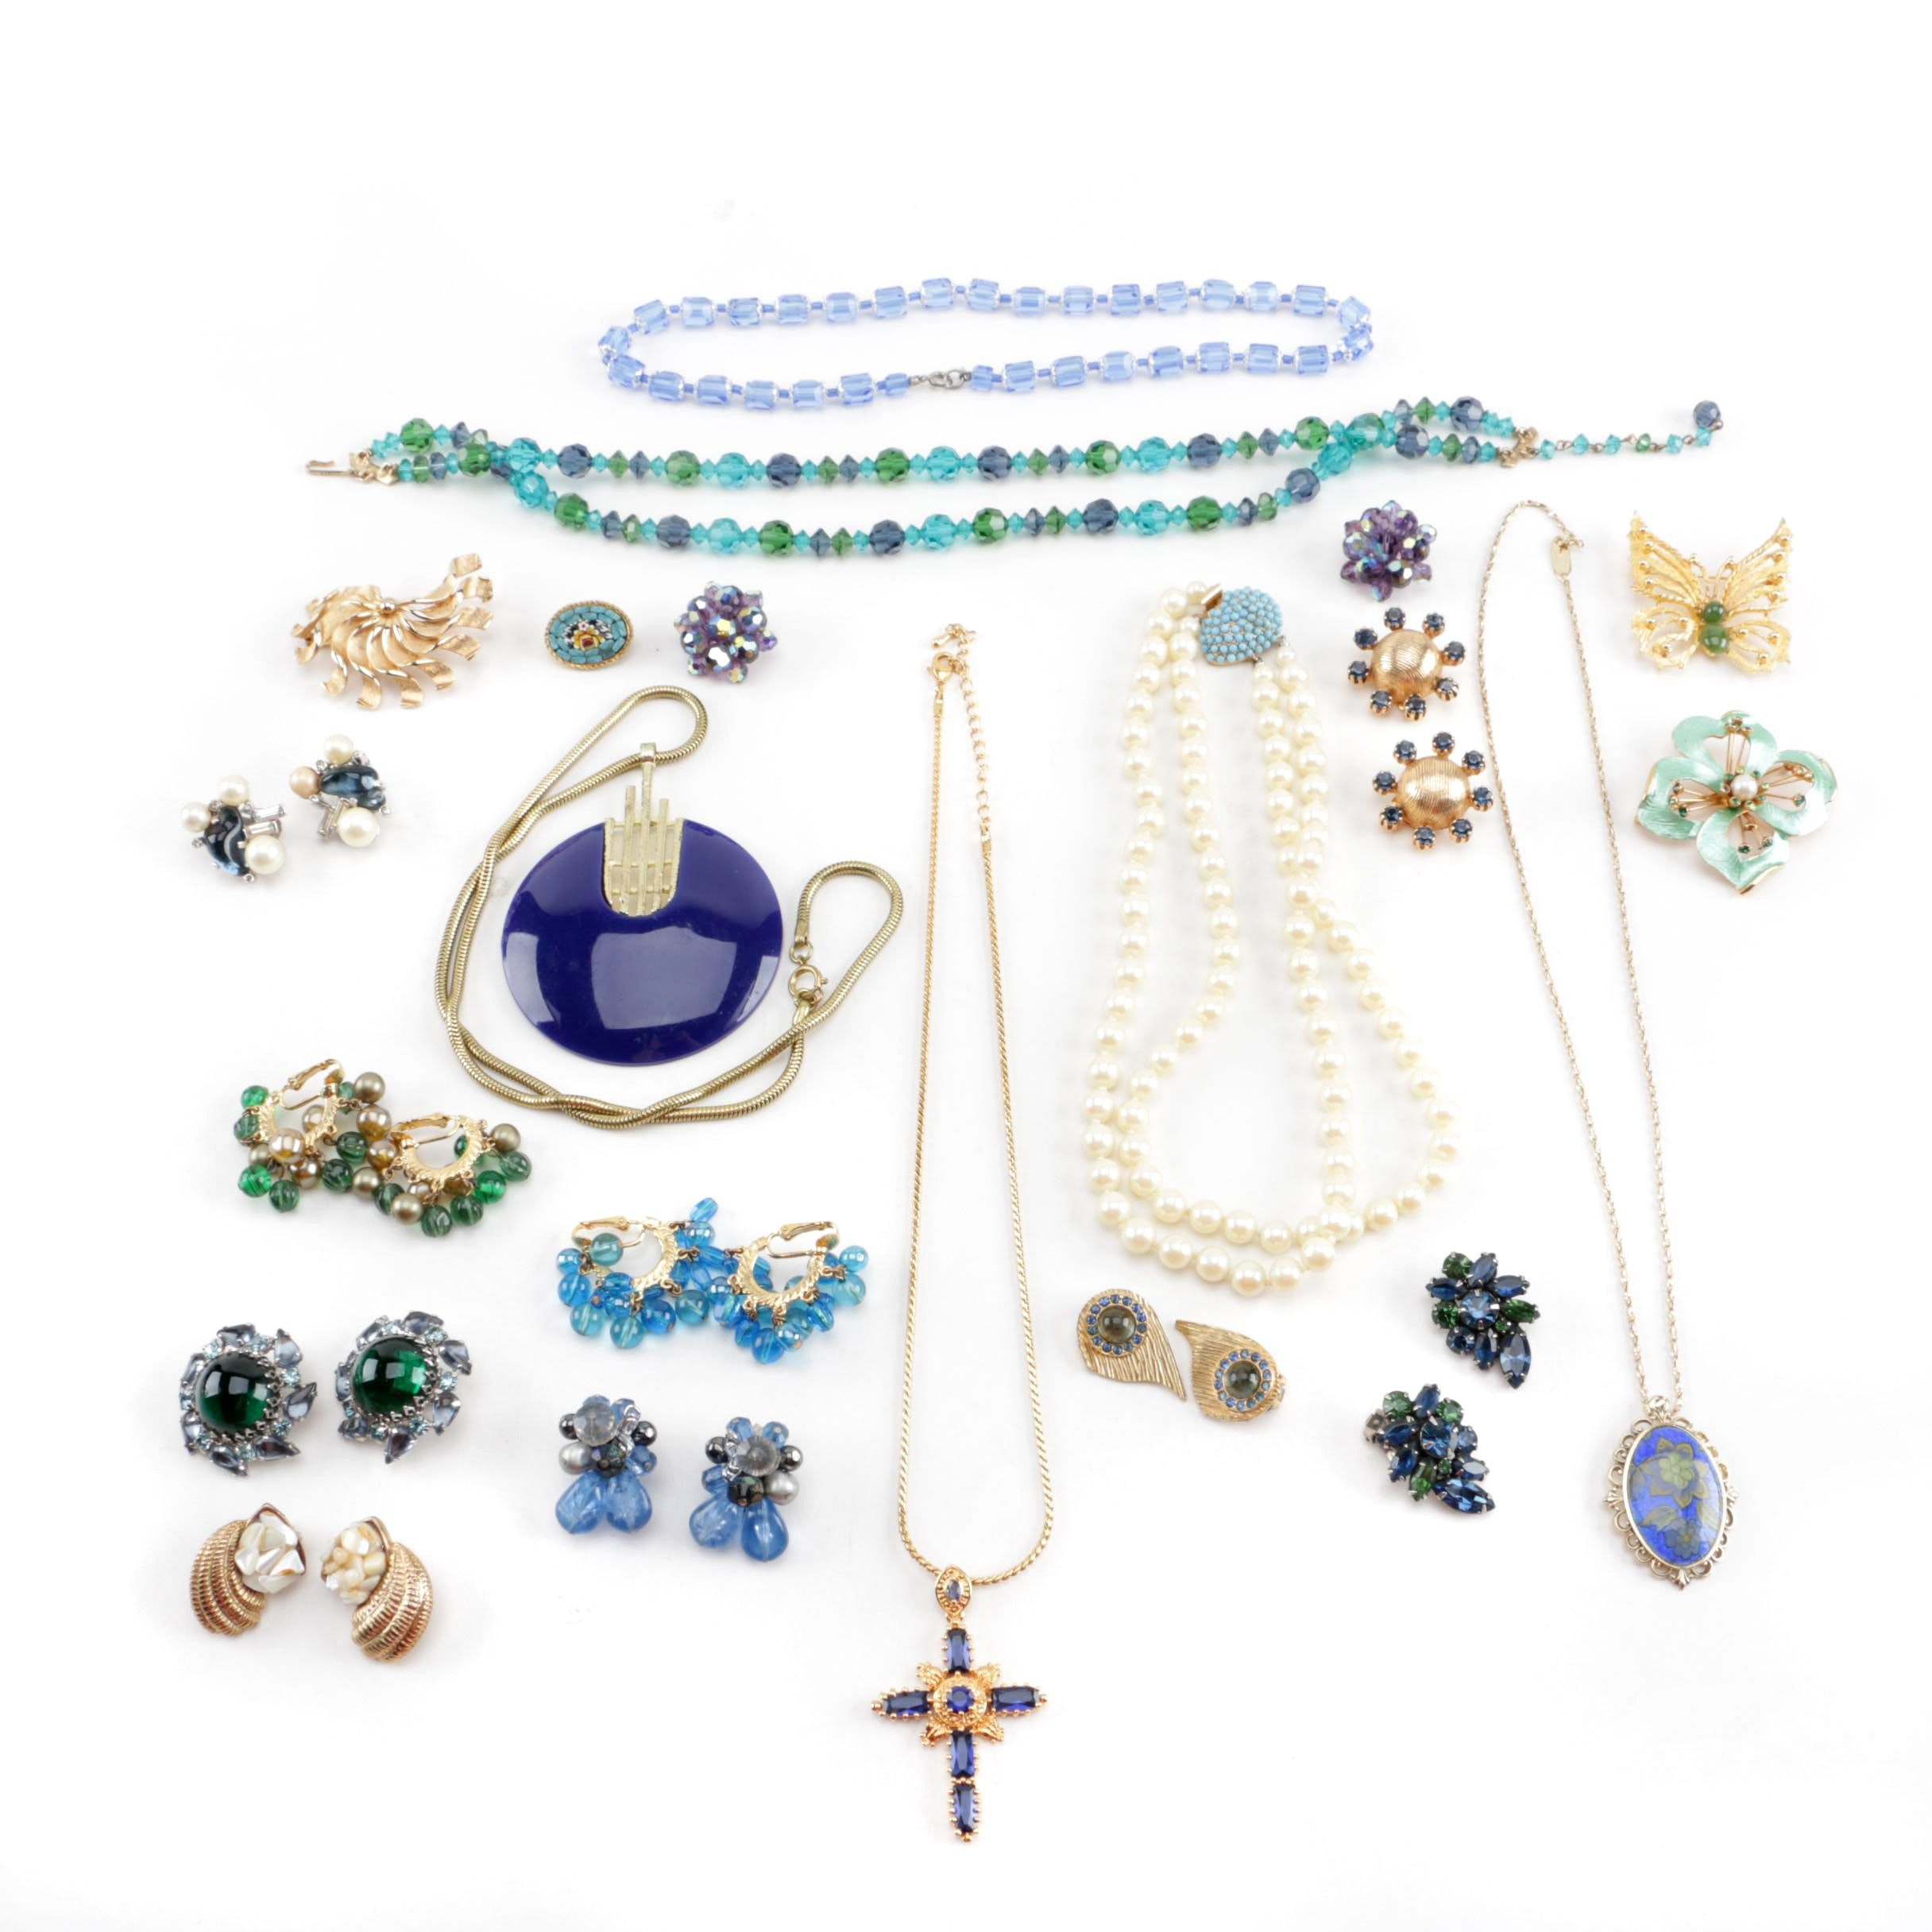 Selection of Vintage Jewelry Including Weiss and Hobé